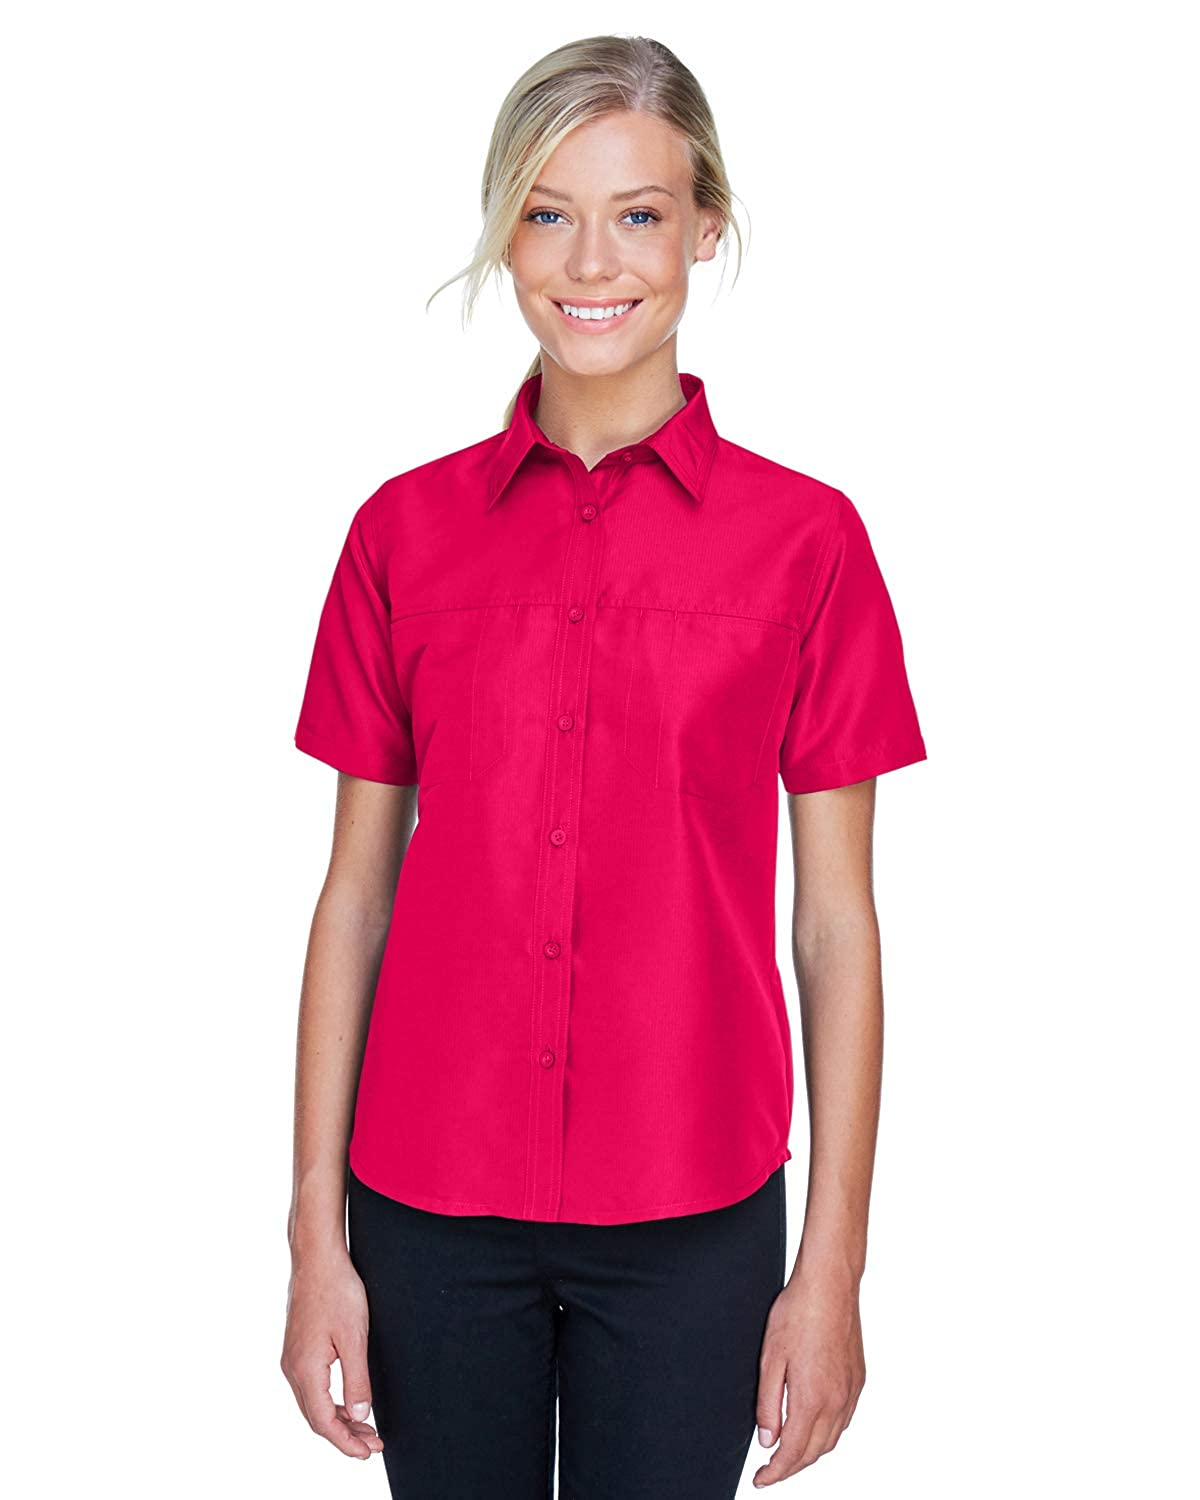 e594ebbecdd Amazon.com  Averill s Sharper Uniform Women s Valet Mesh Back Performance  Shirt  Clothing